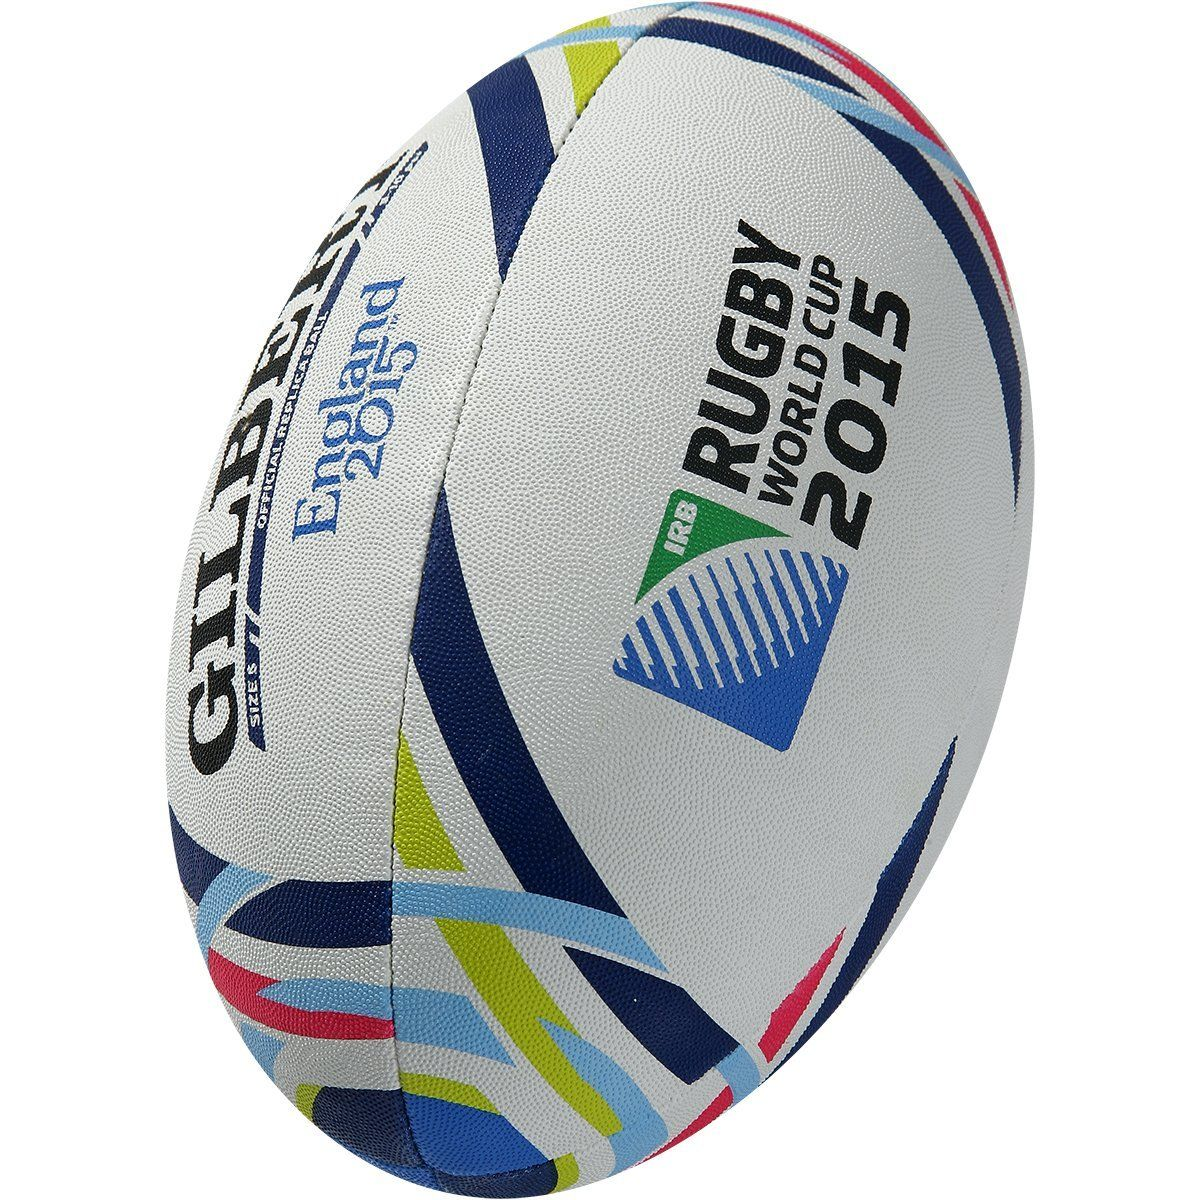 Gilbert 2015 Rugby World Cup England Replica Rugby Ball Rugby Ball 2015 Rugby World Cup Rugby